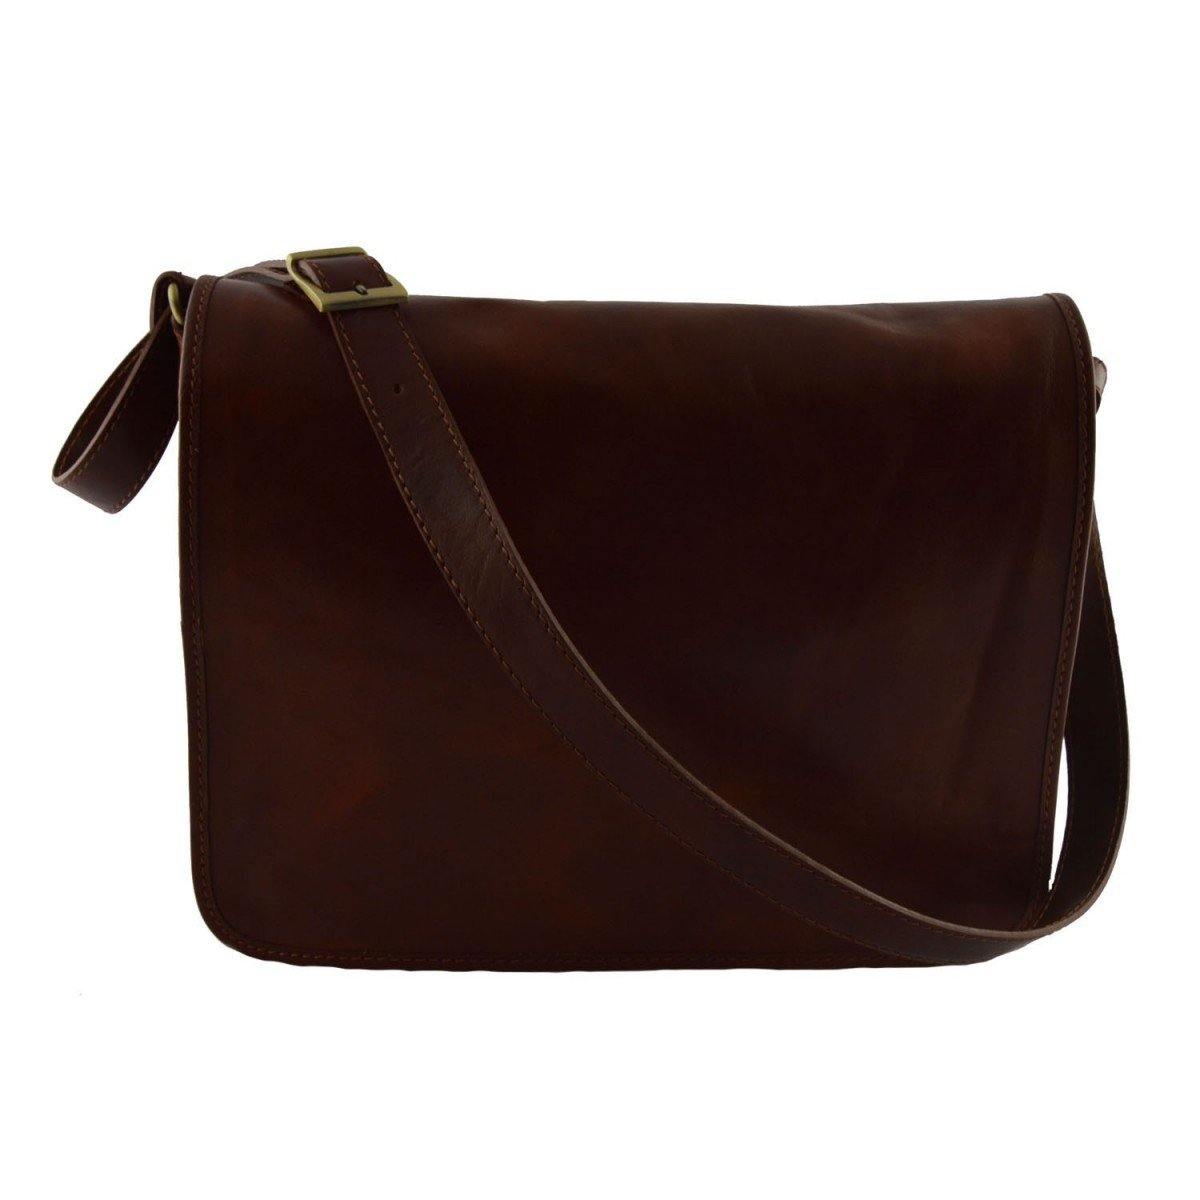 Made In Italy Genuine Leather Messenger Bag For Man 1 Compartment With Front Pocket Color Brown - Man Bag   B01CON7TU4